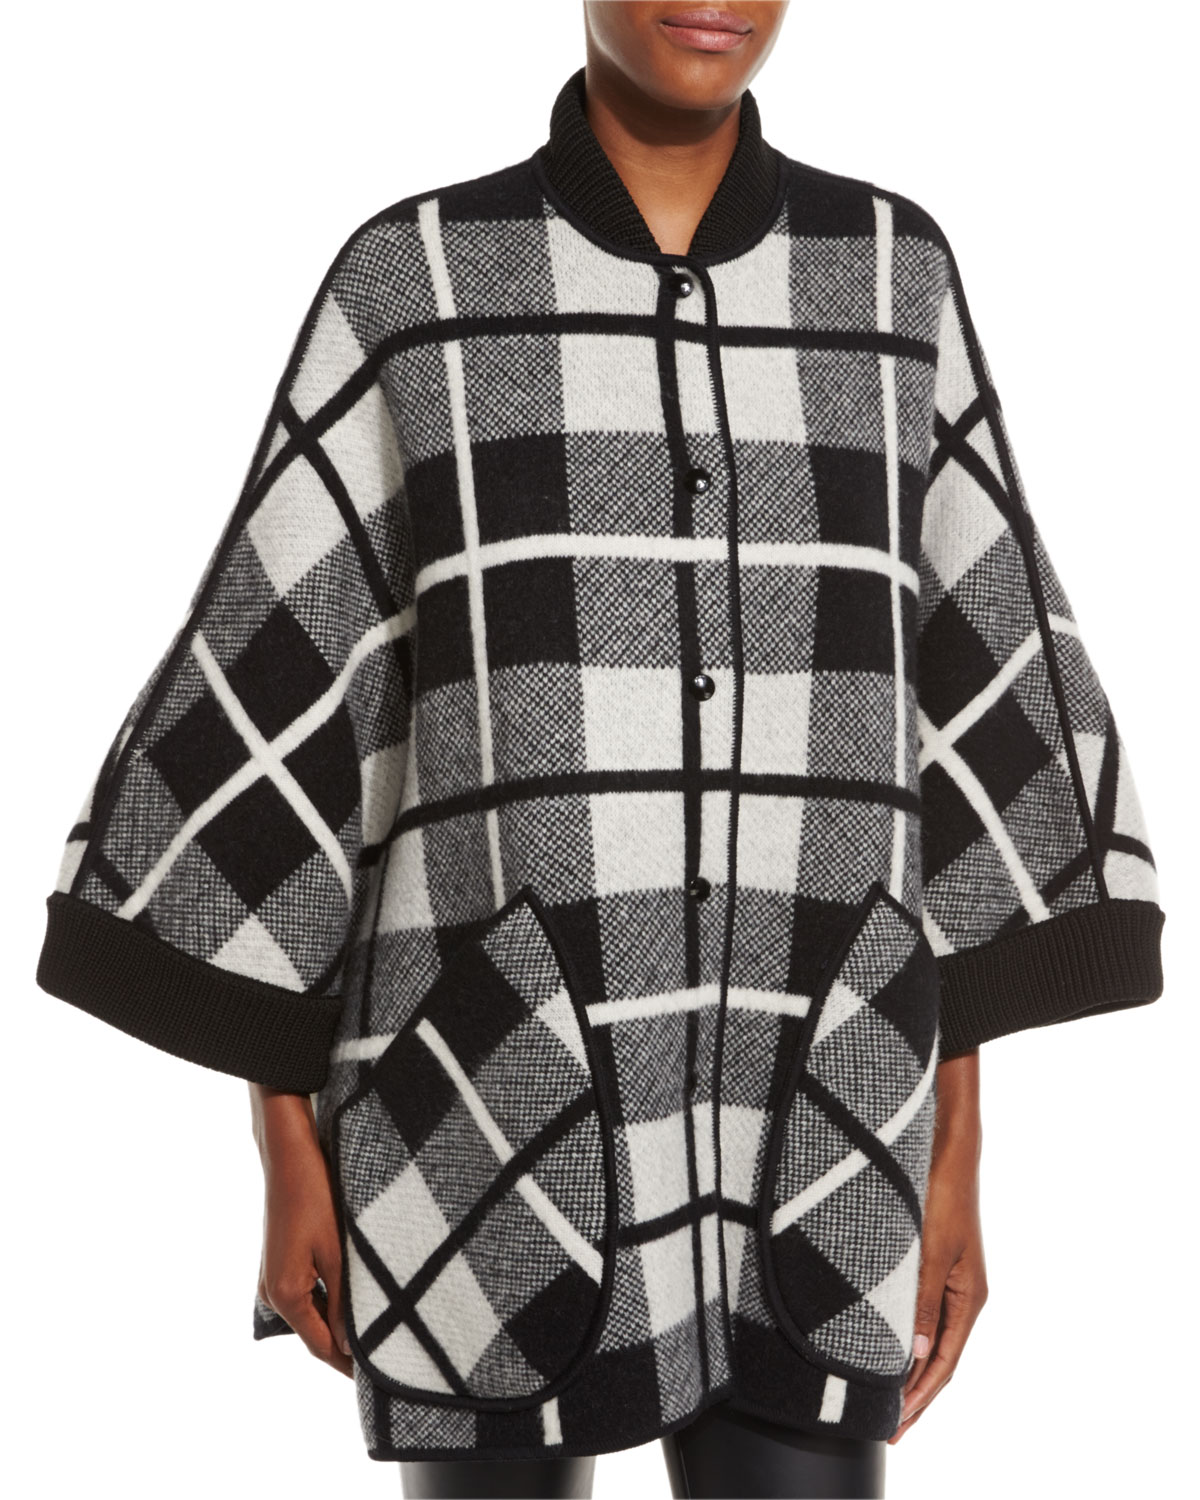 884fafabd22d M Missoni Madras Plaid Knit Wool Cape